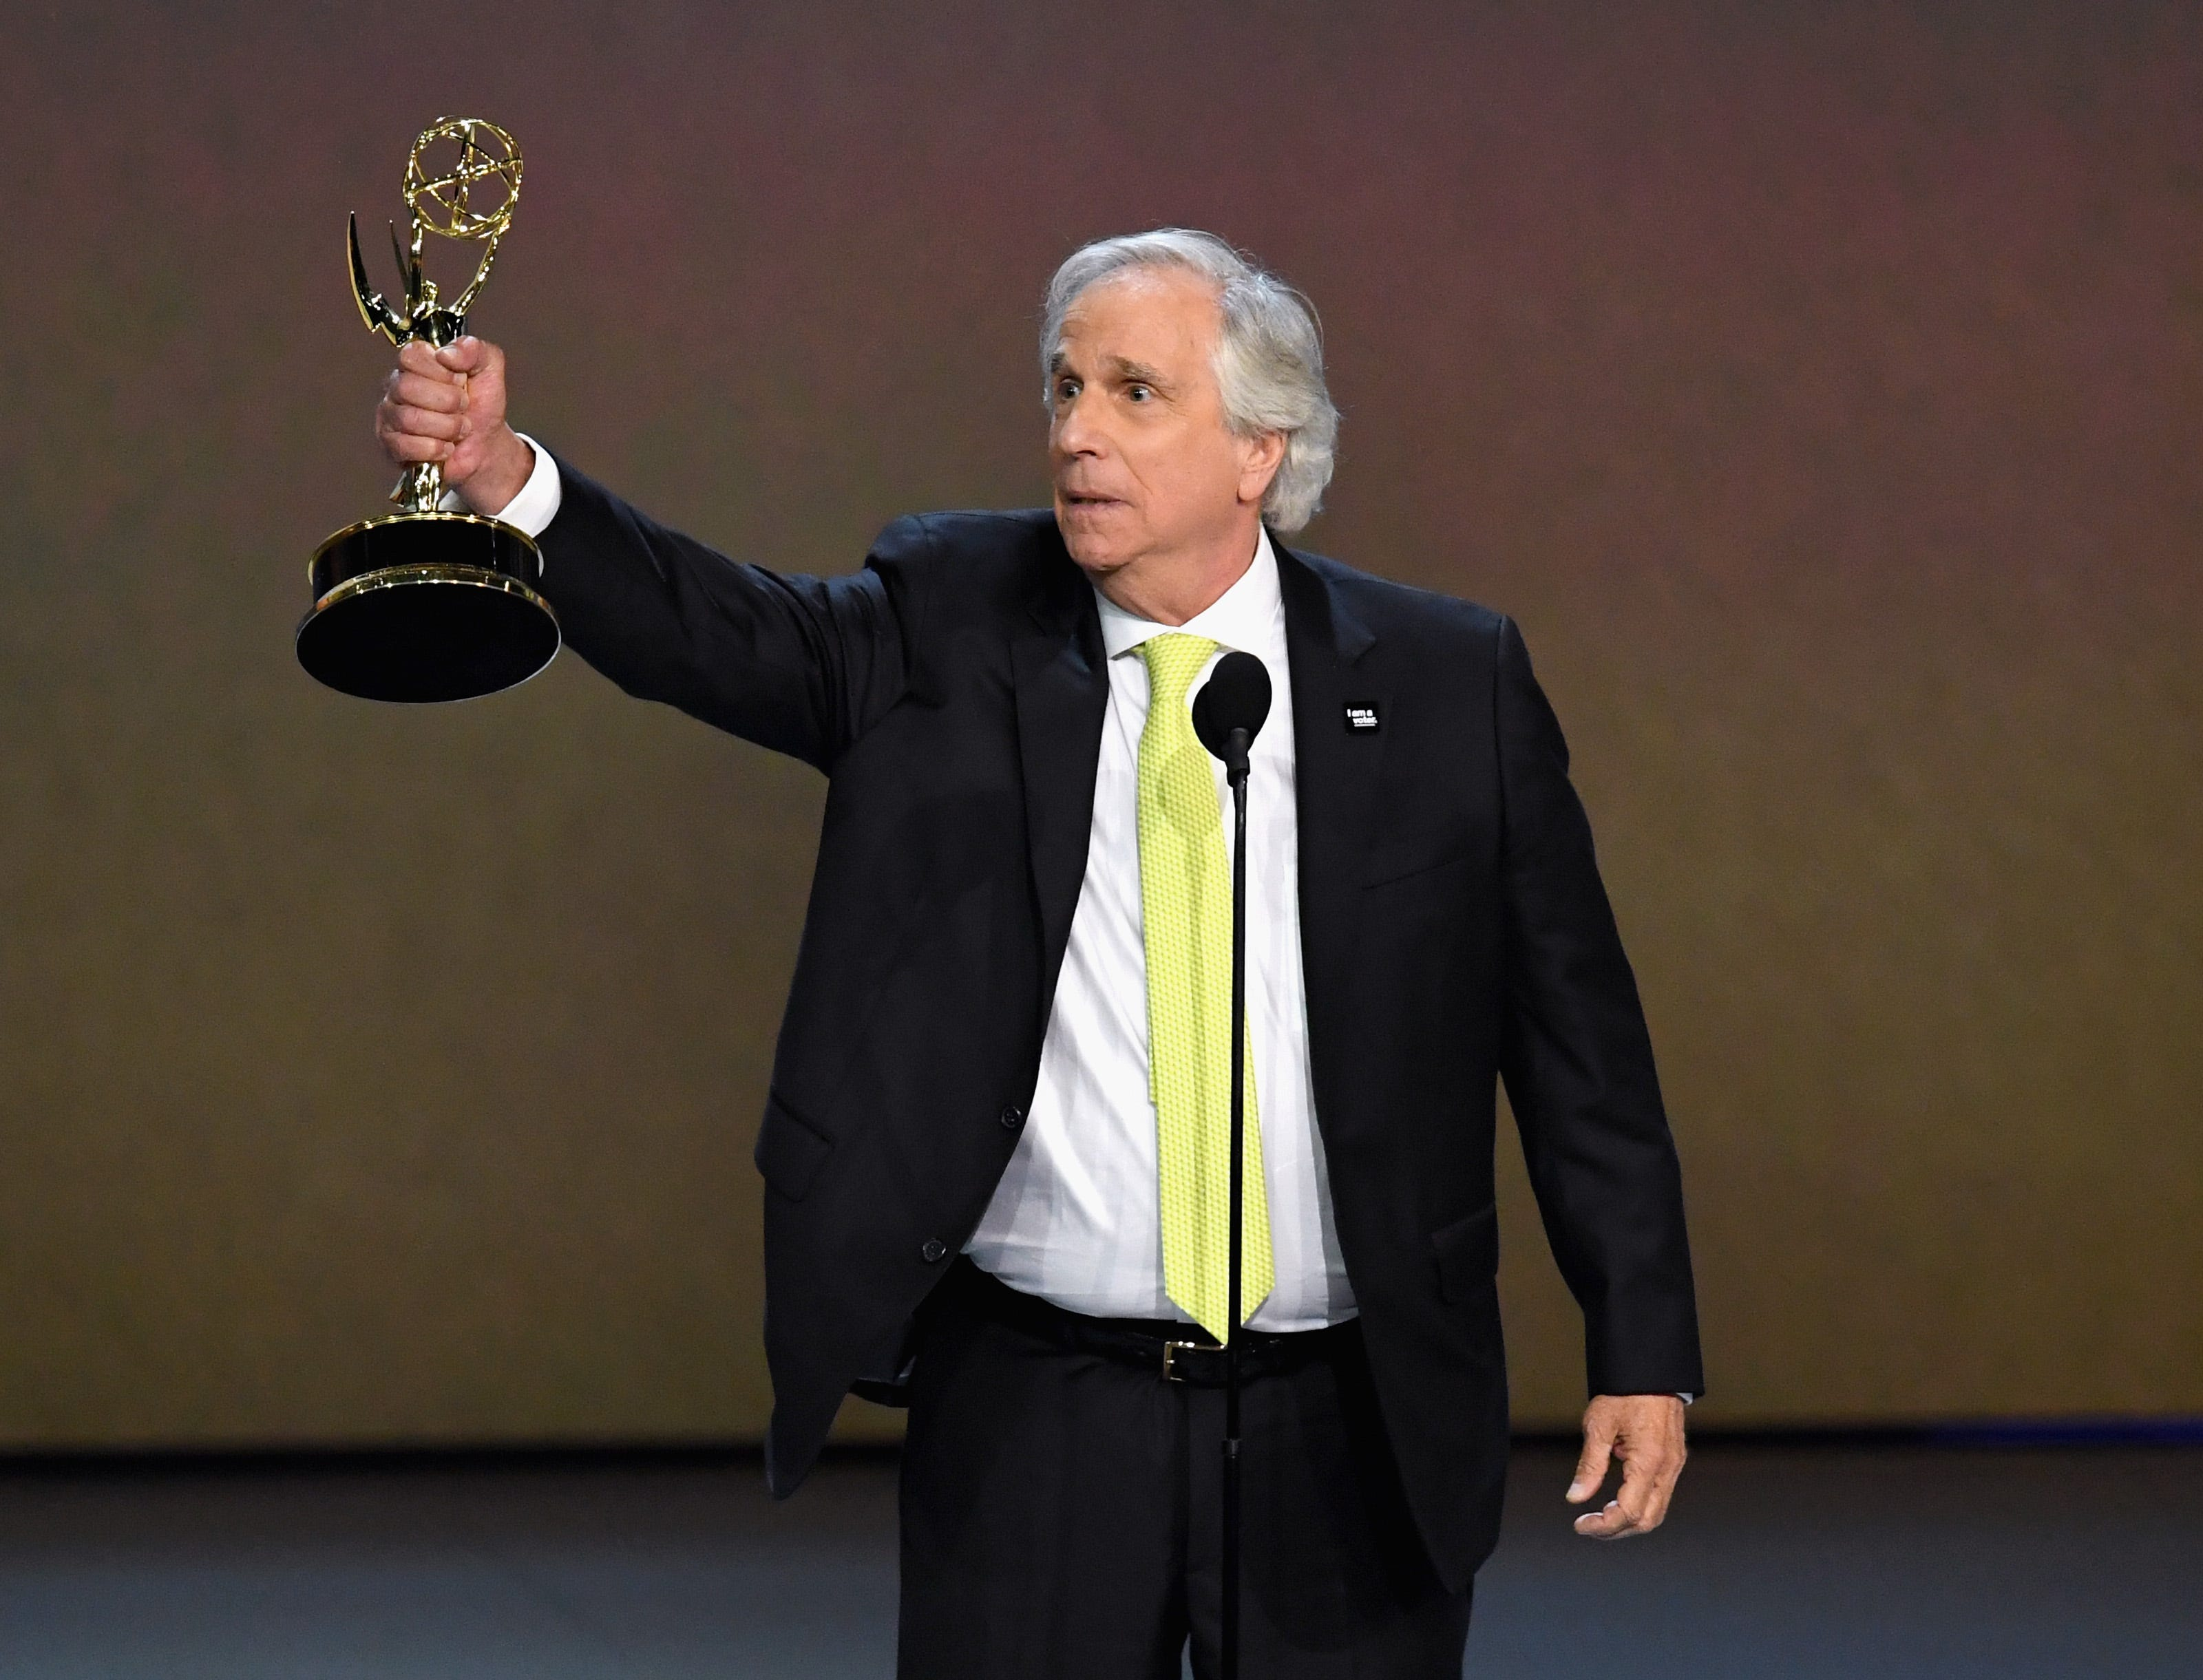 """Henry Winkler accepts the Emmy — his first ever — for supporting actor in a comedy series for HBO's """"Barry"""" Monday night at the 70th Emmy Awards."""